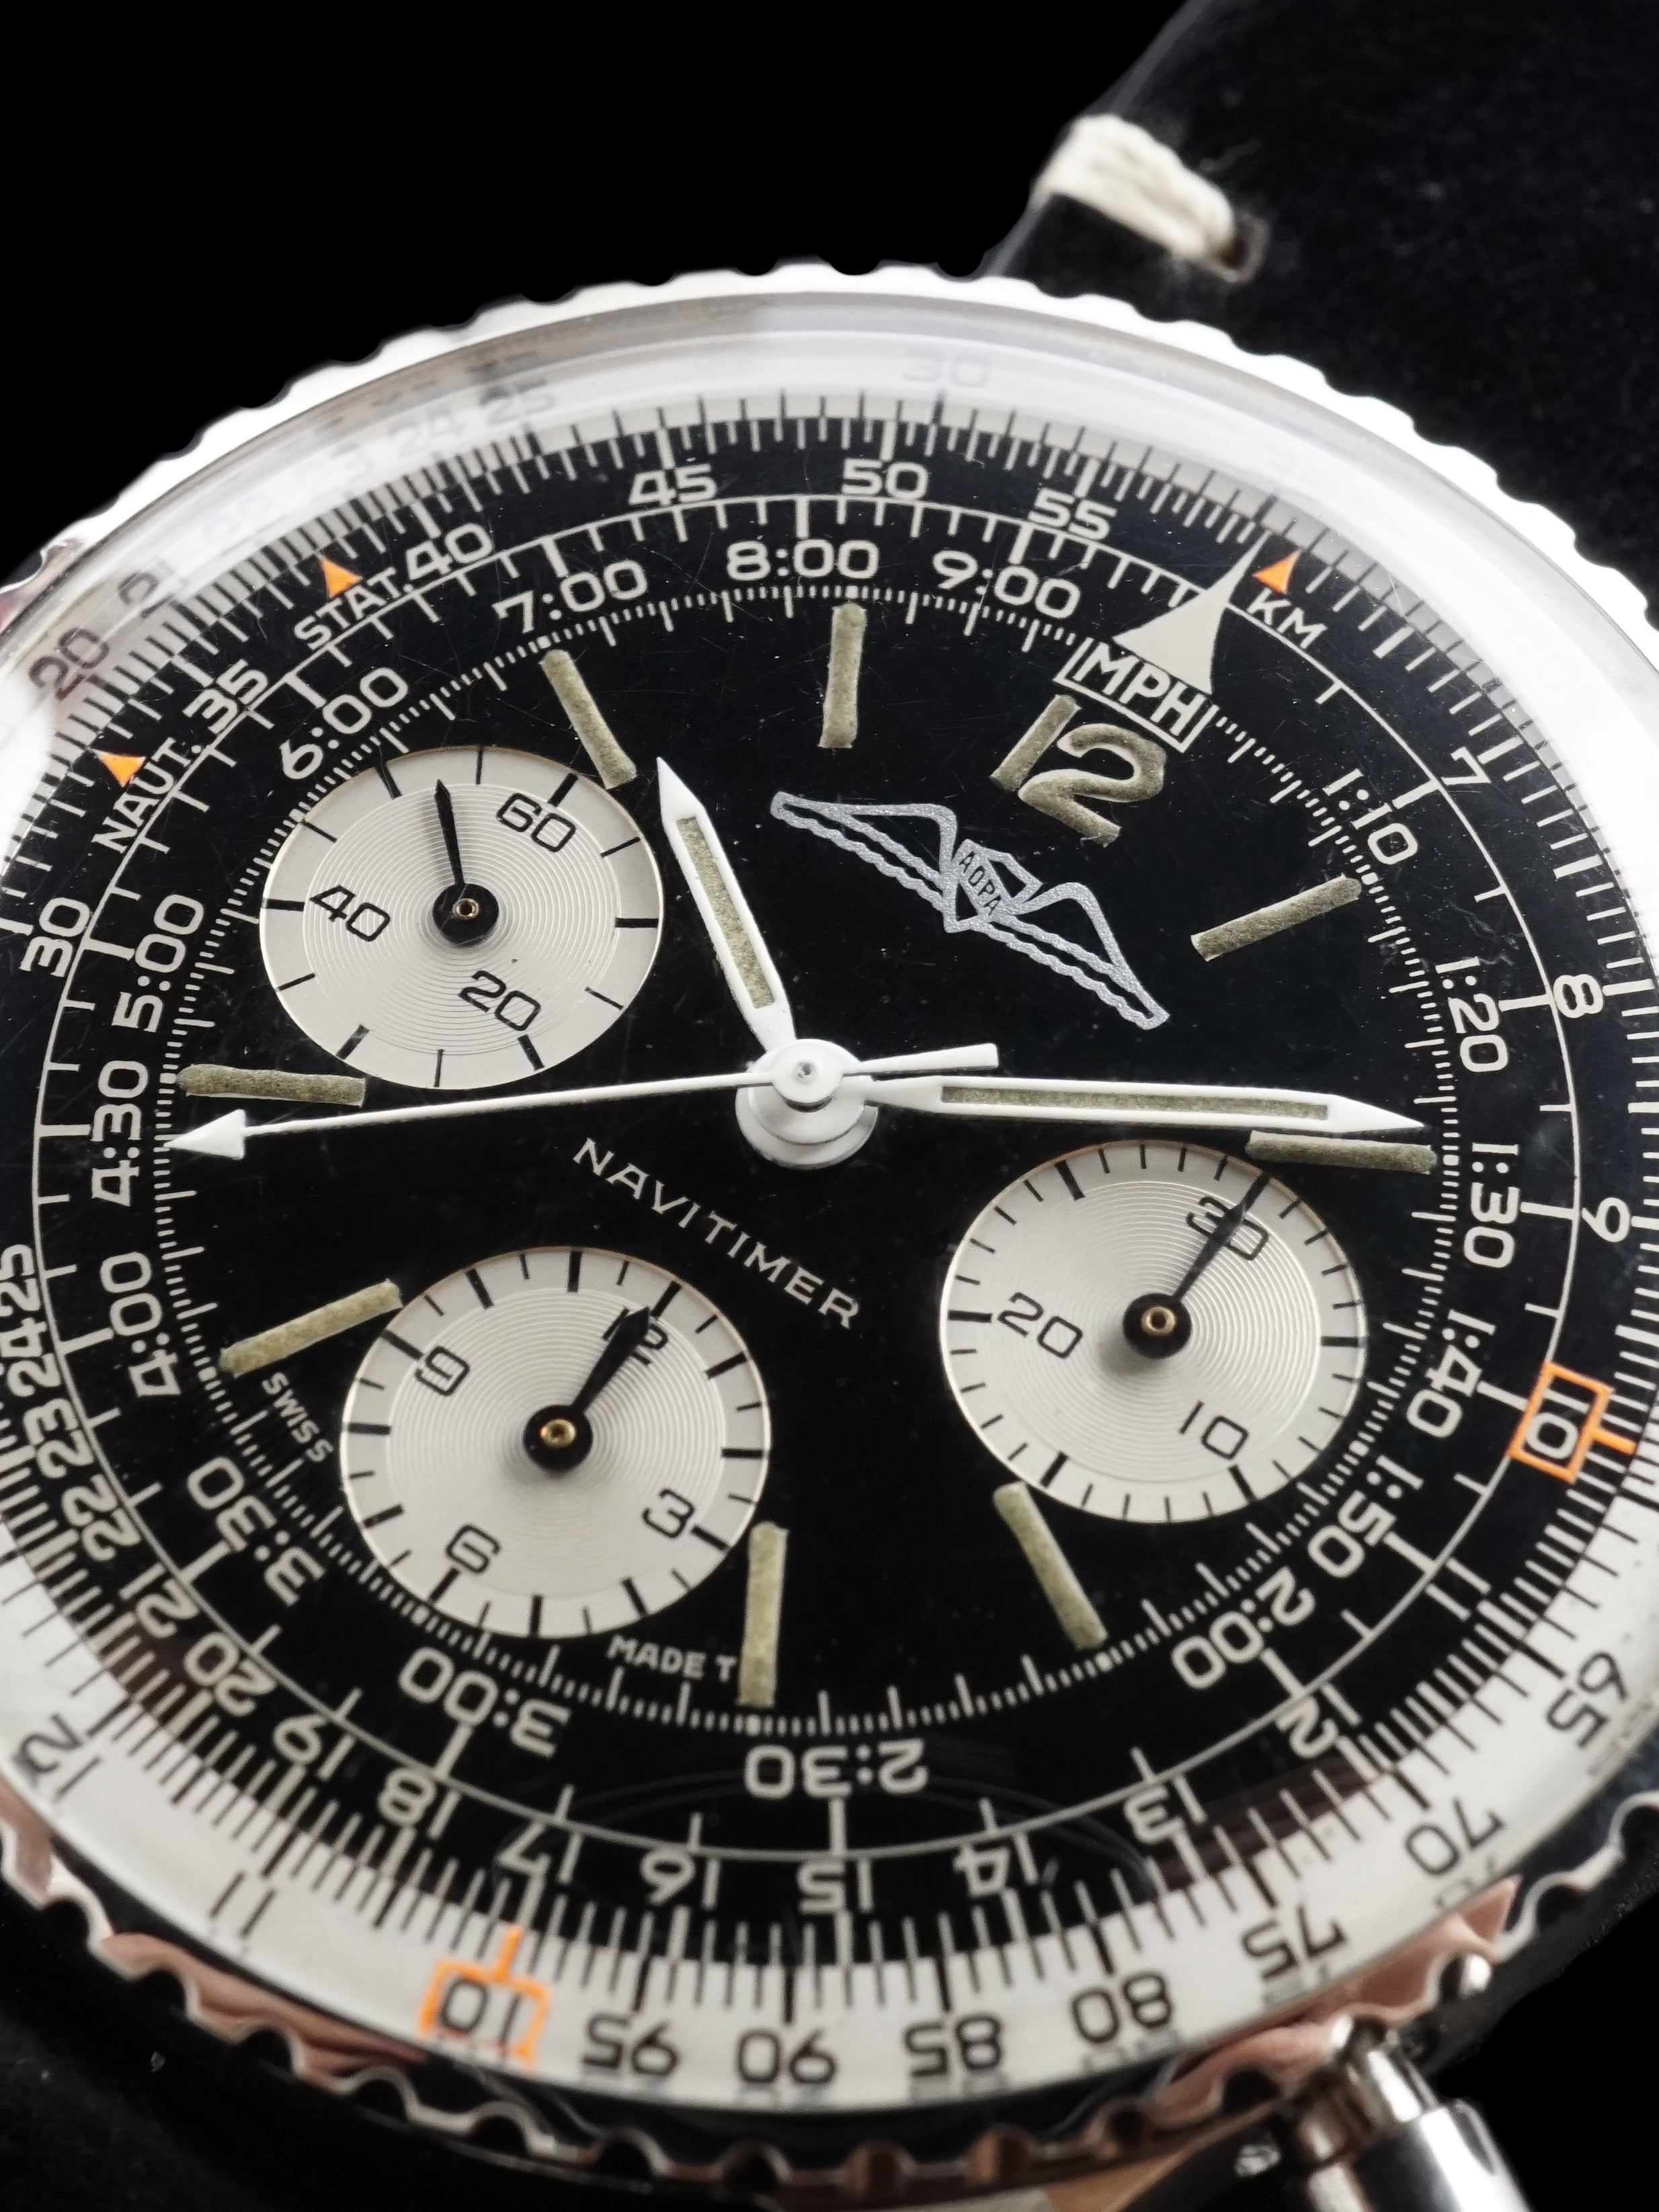 1967 Breitling Navitimer (Ref. 806) AOPA Gilt Dial With Box and Papers